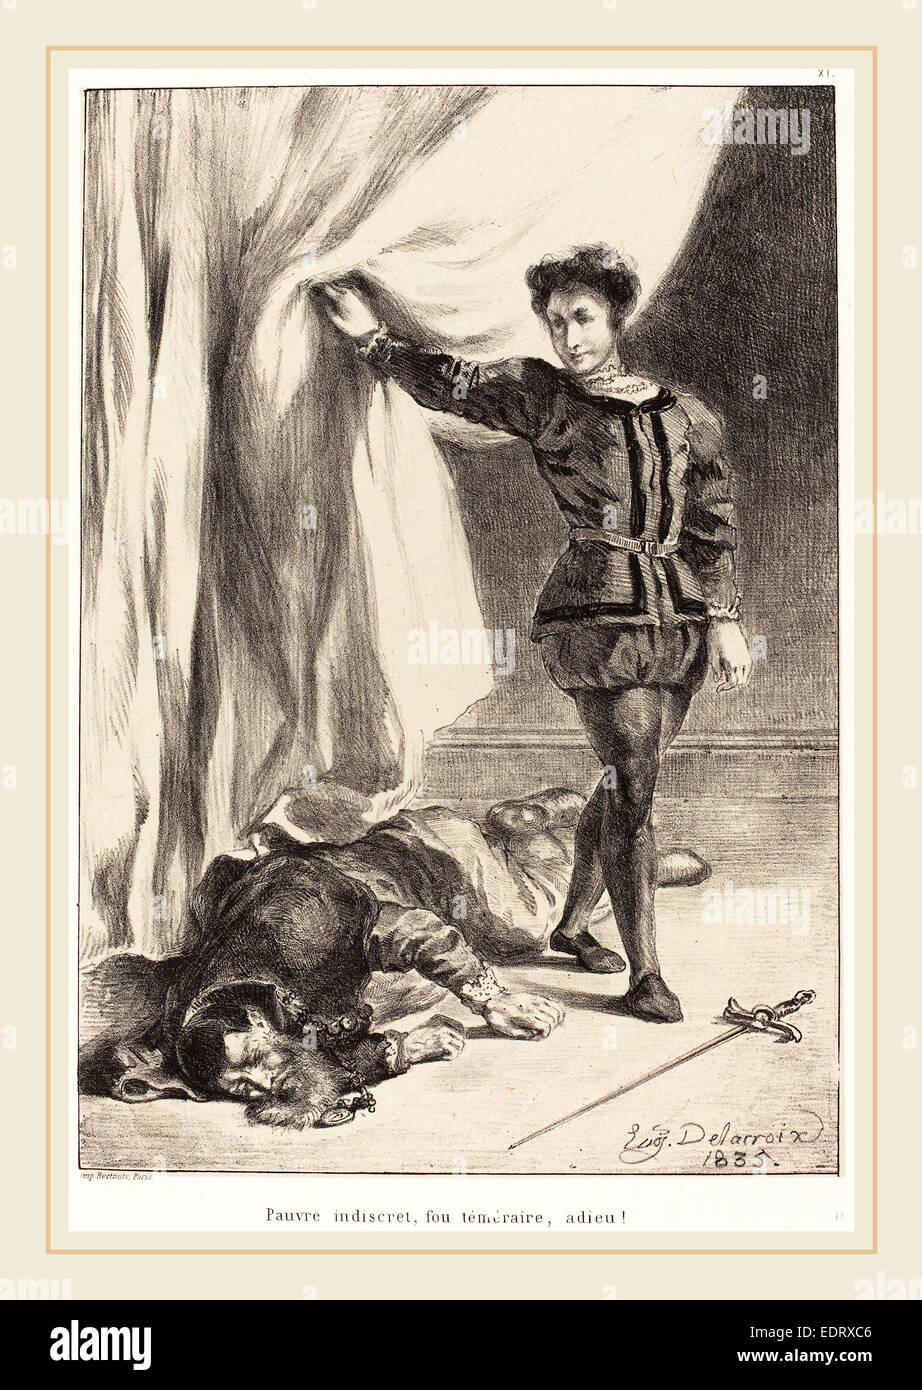 Eugène Delacroix (French, 1798-1863), Hamlet and the Body of Polonius (Act III, Scene IV), 1835, lithograph - Stock Image